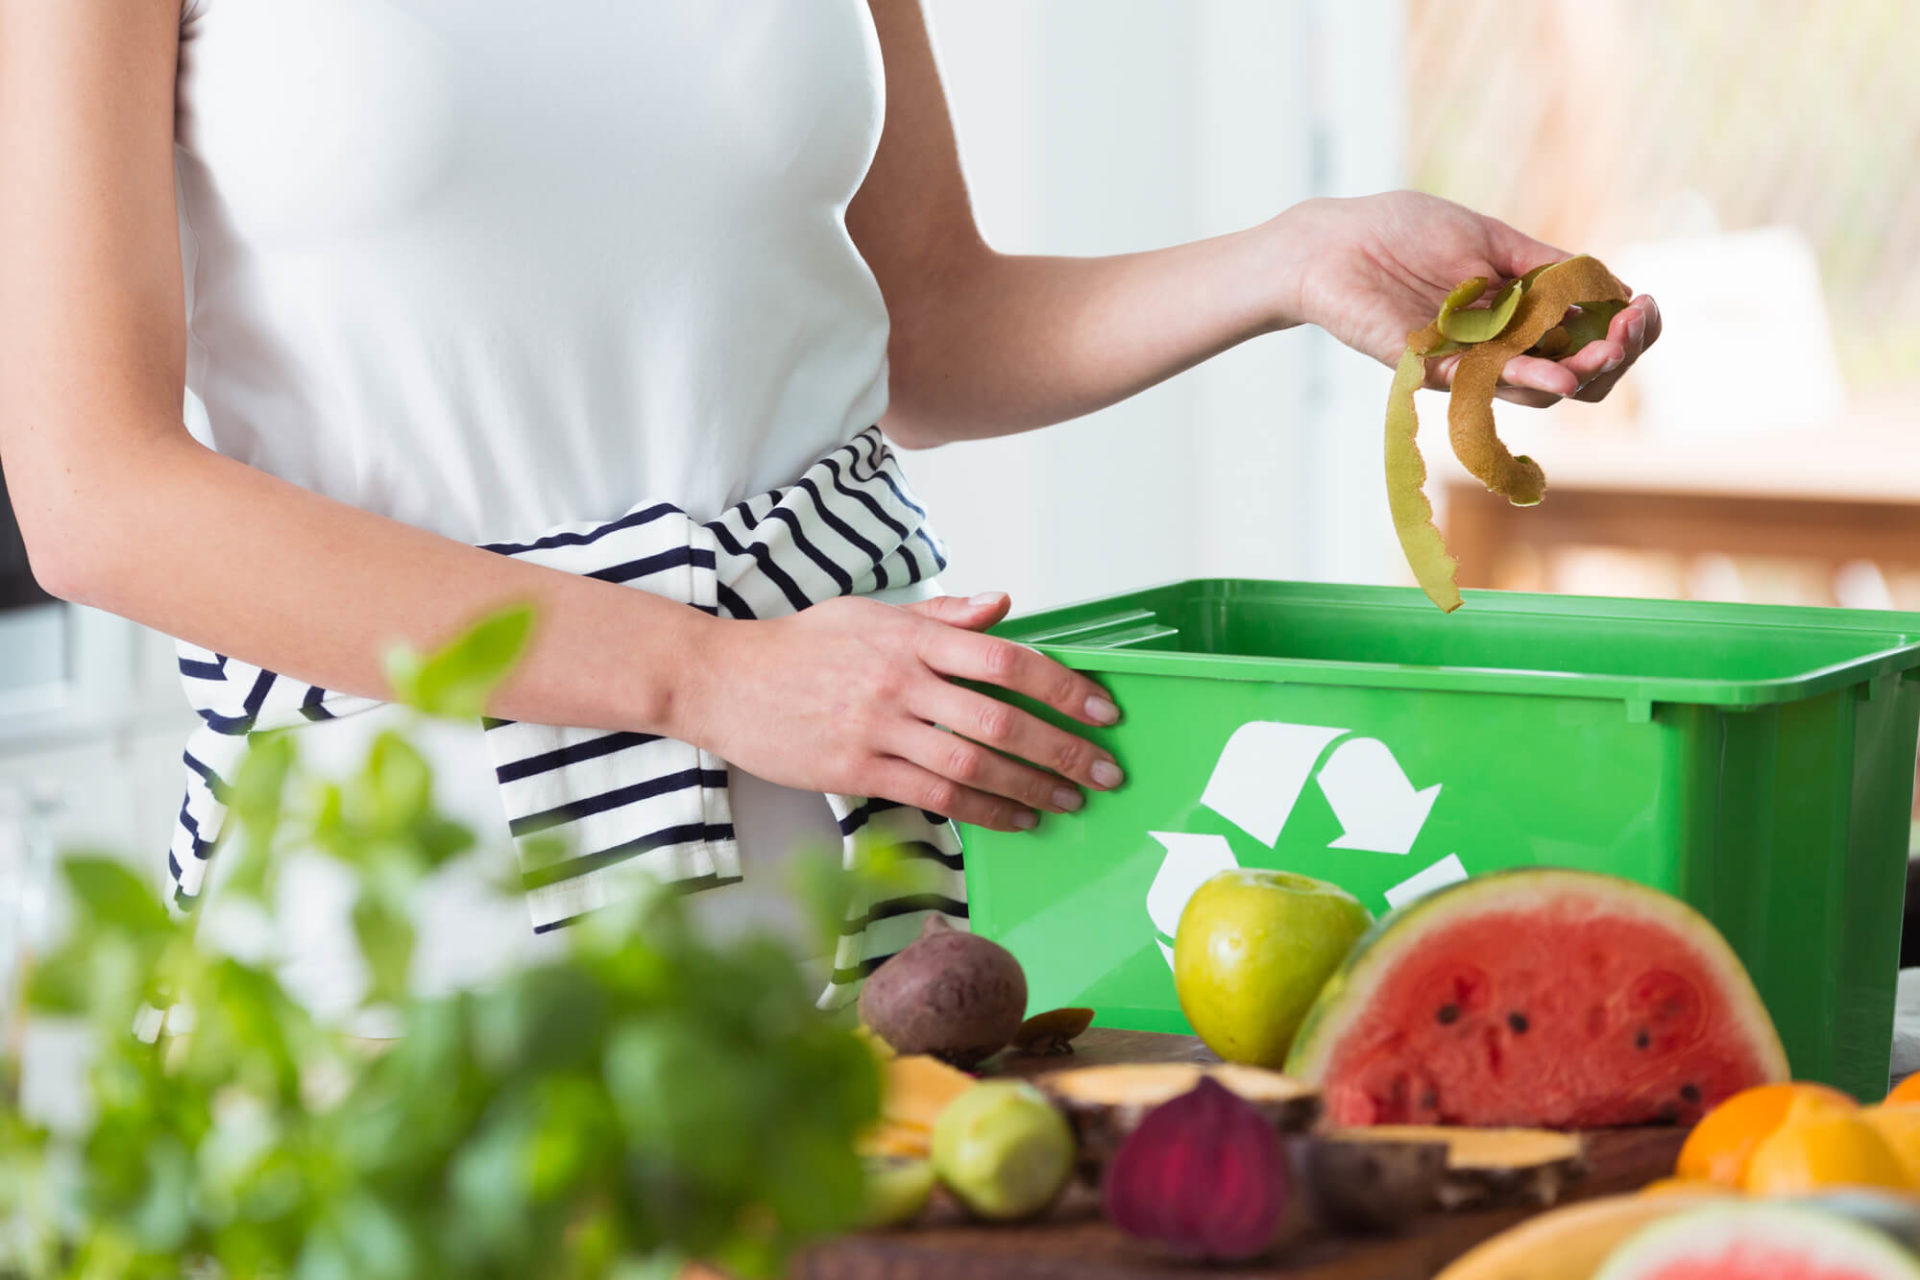 7 Simple Ways to Reduce Kitchen Waste